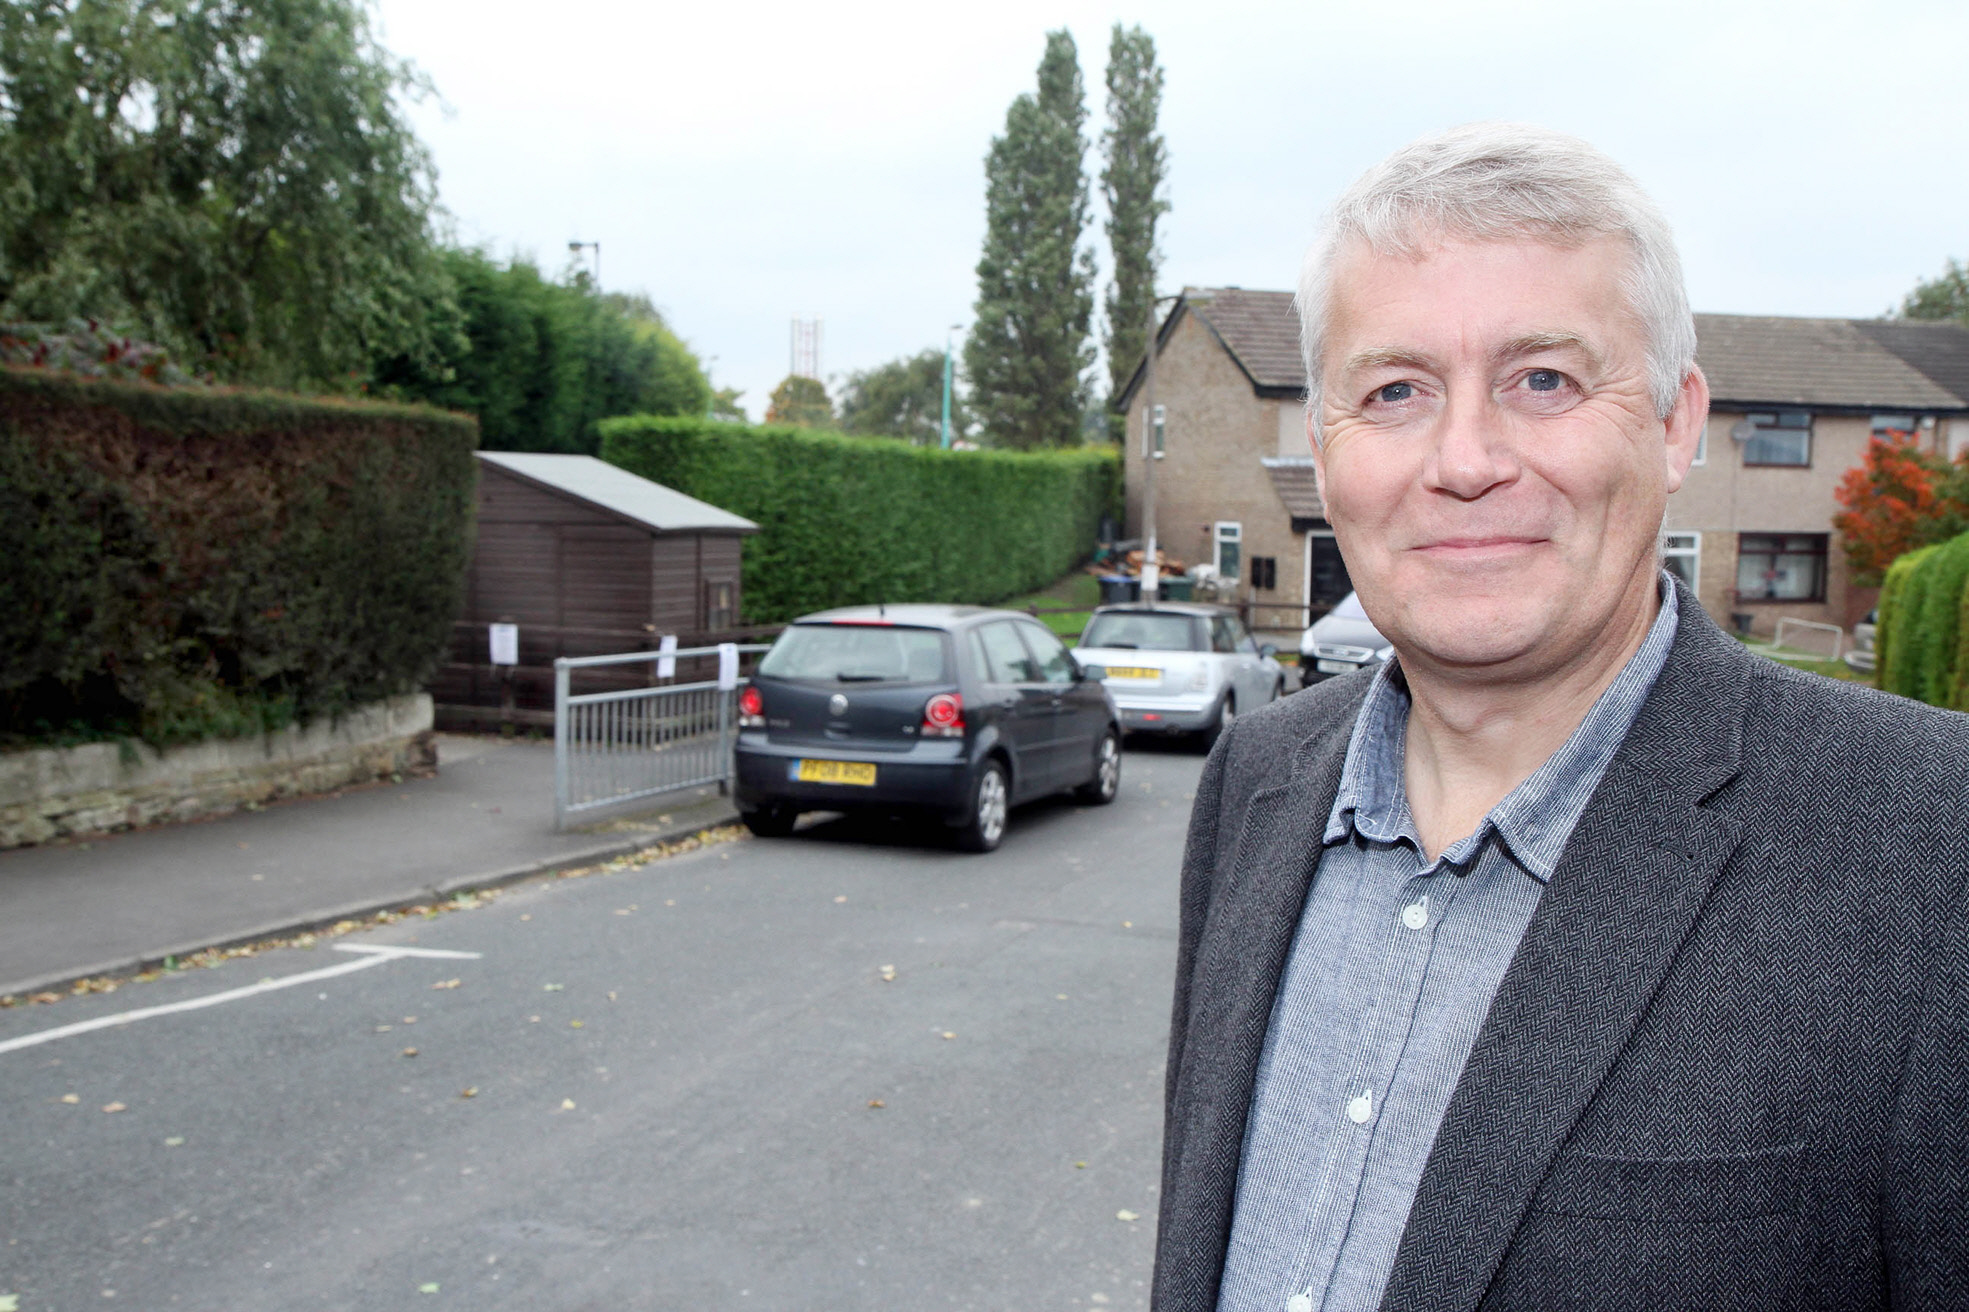 Councillor Andrew Mallinson in Thornhill Road, where he has called into  question  extended plans for double yellow lines in a bid to tackle parking issues from the nearby Airedale Hospital